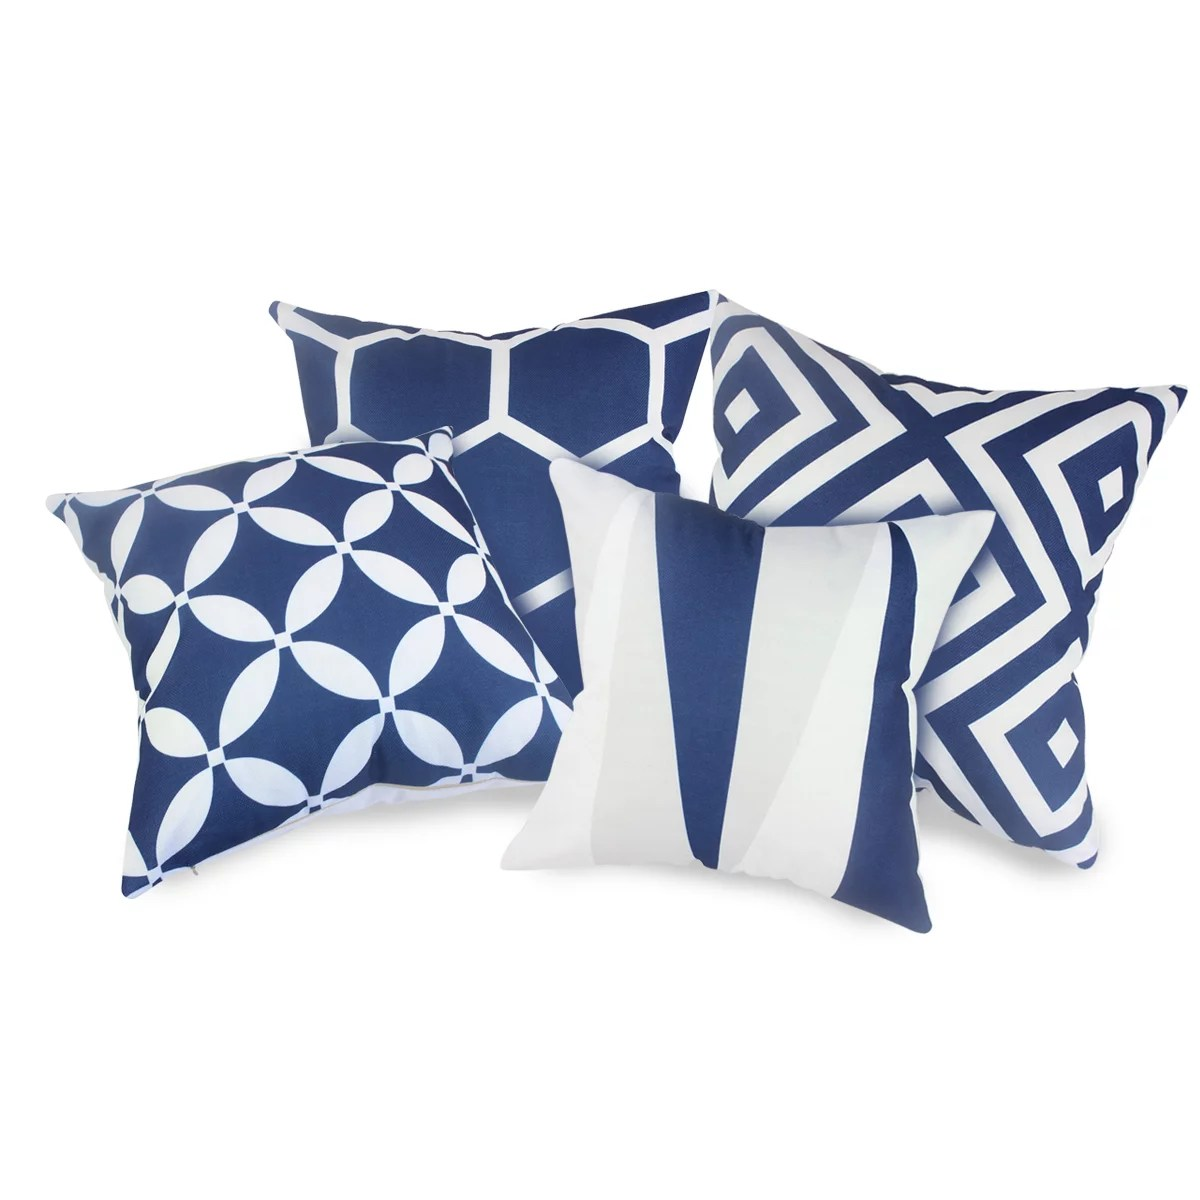 fabricmcc set of 4 navy blue and white geometric decorative pillow covers fashion couch throws cases cushion pillow covers 18 x 18 for living room